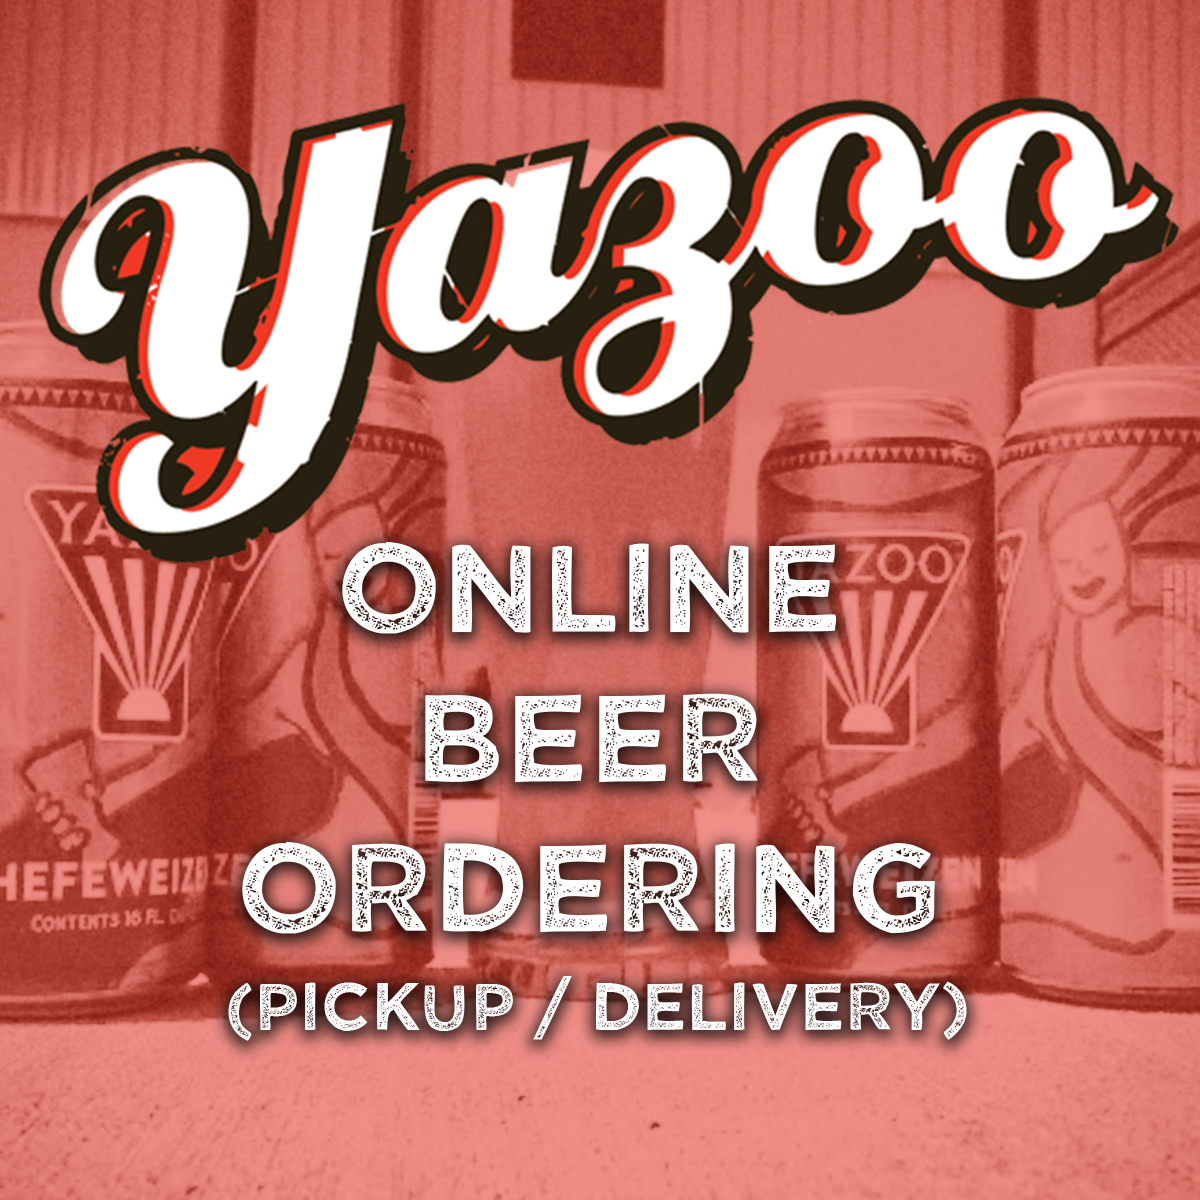 BEER (for Pickup/Delivery)